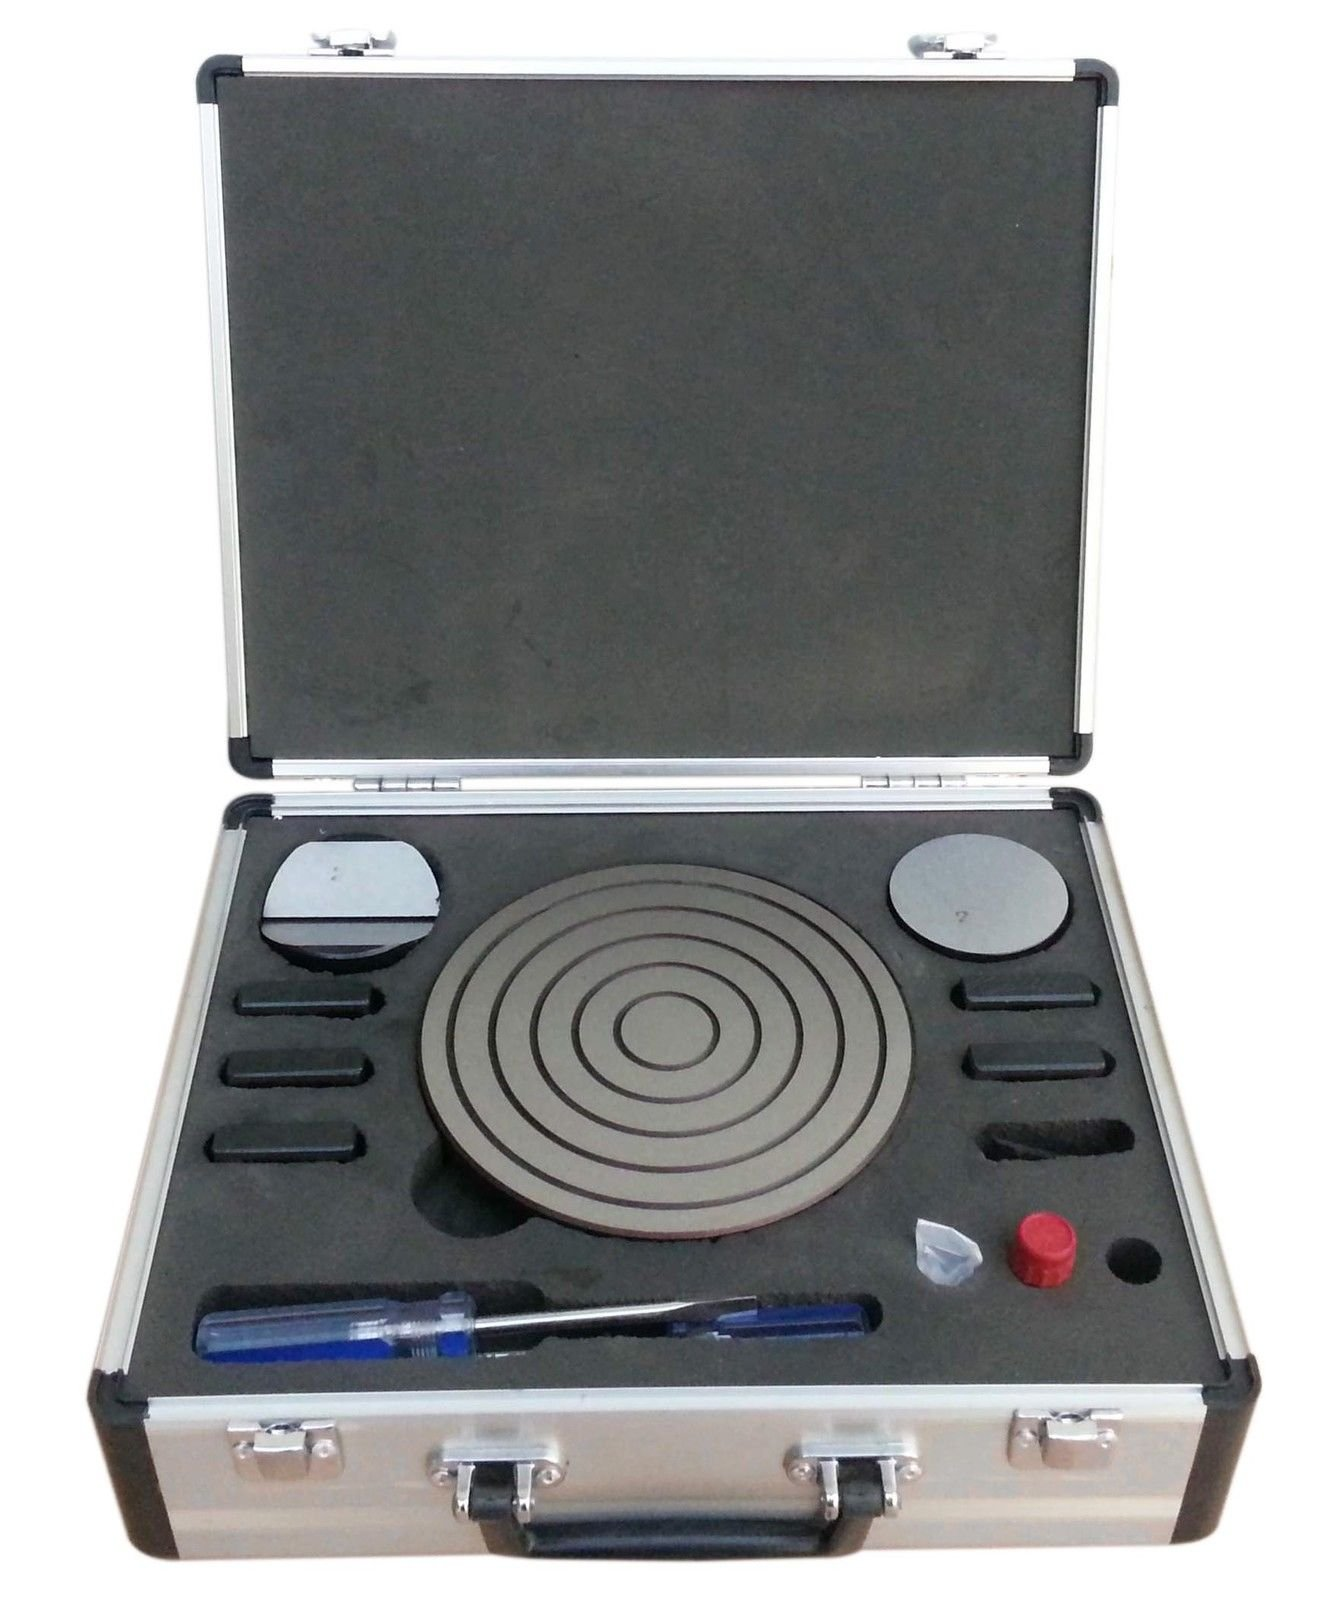 AccusizeTools - 3R Type Rockwell Type Hardness Tester HR150A with Accessories In Box, #RT90-0330 by Accusize Industrial Tools (Image #2)